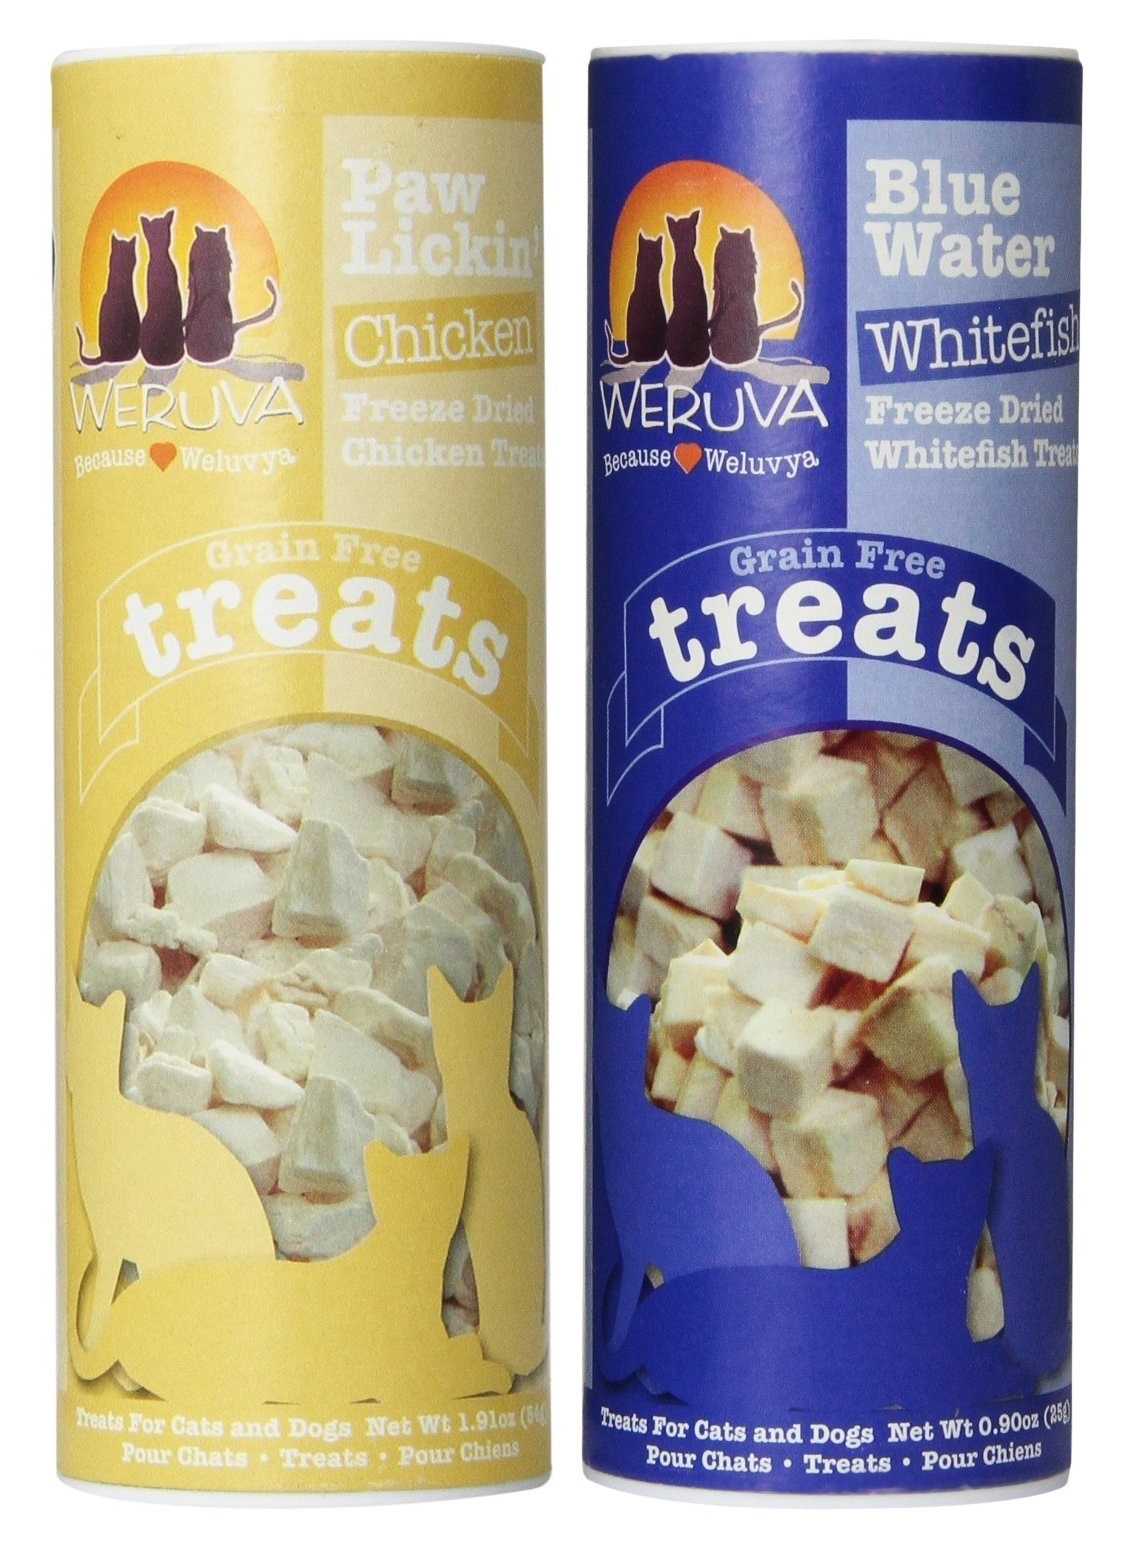 Weruva Dog Treats